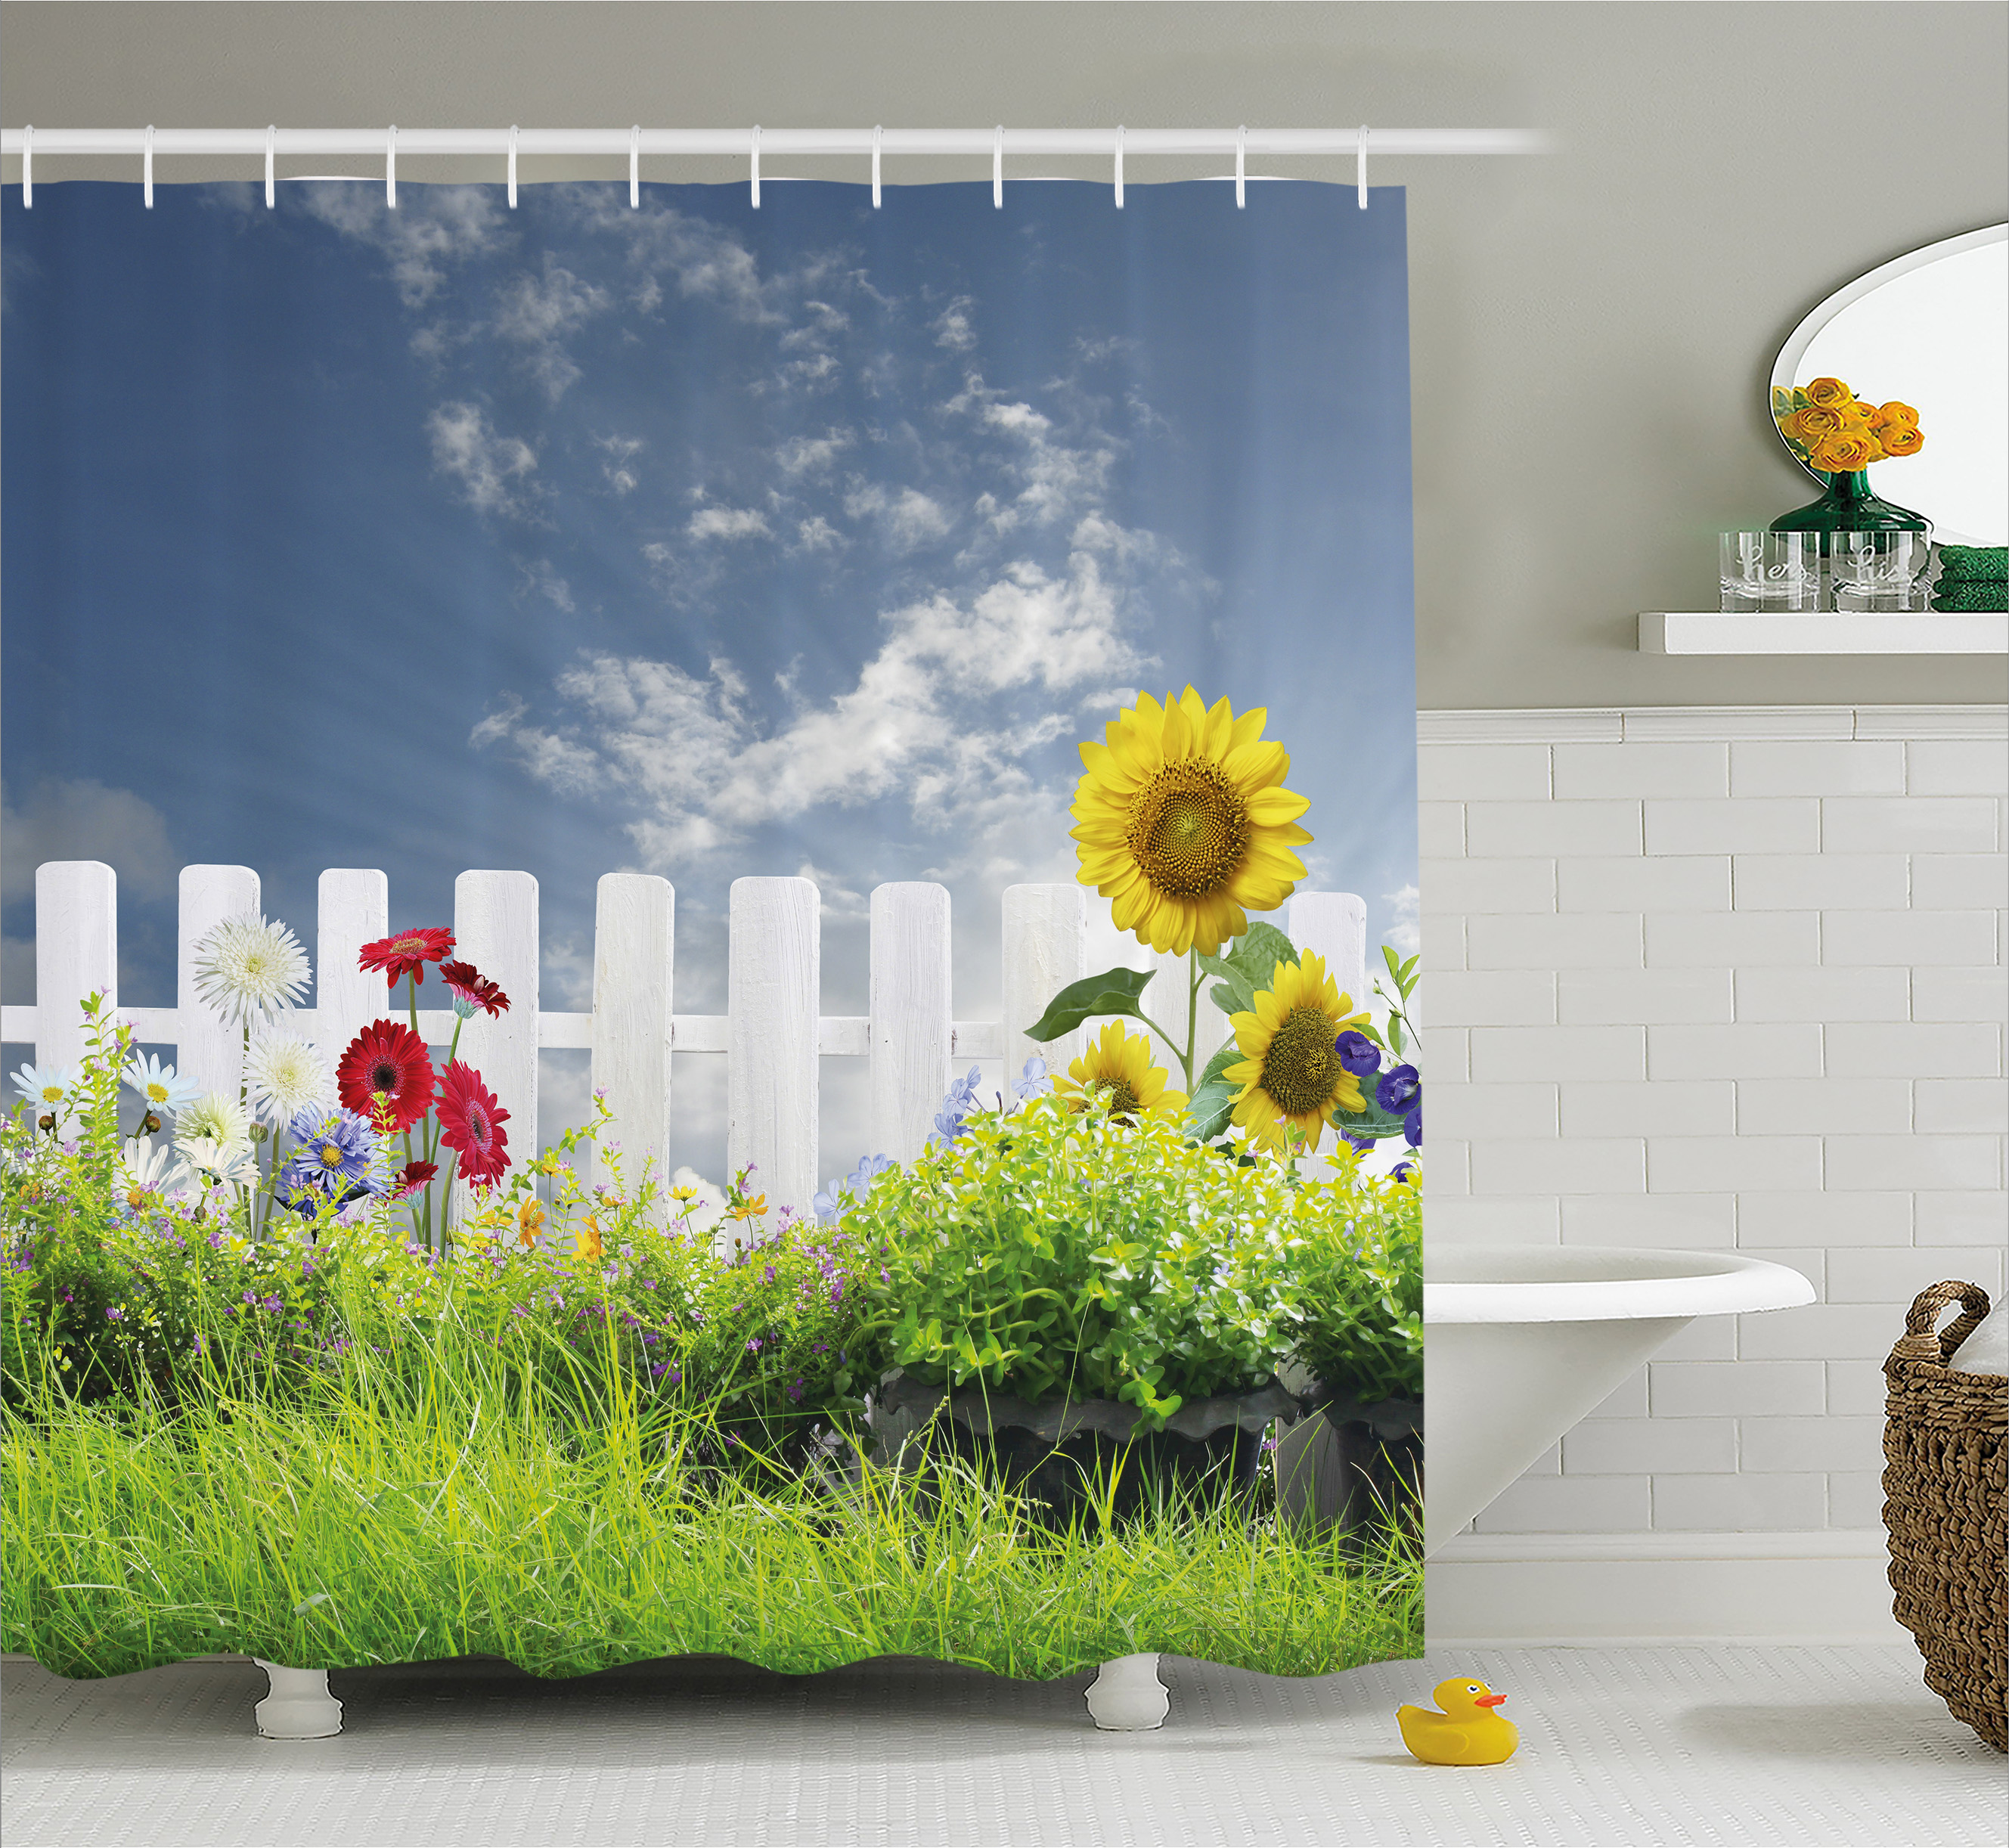 Farm House Decor Shower Curtain, Grass Foliage Field with Bar Sunflowers Daisy Hedge Yard Cloudy Jardin, Fabric Bathroom Set with Hooks, 69W X 84L Inches Extra Long, White Green, by Ambesonne